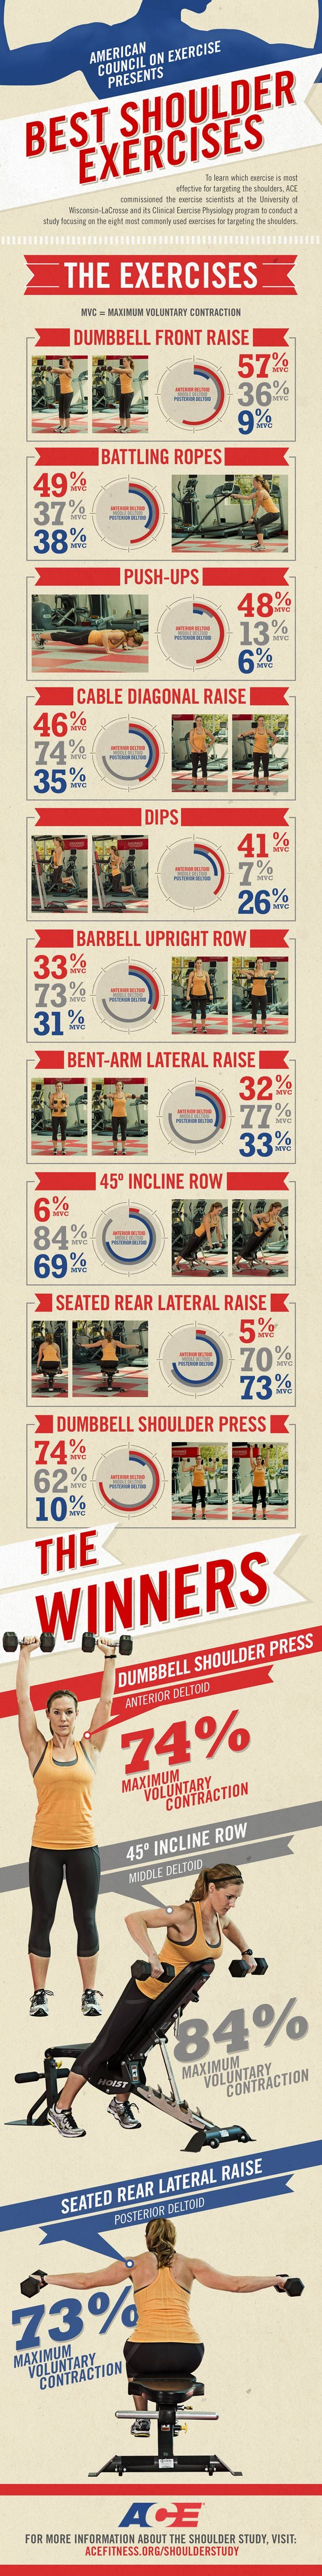 Best shoulder exercises to build strength and shape!